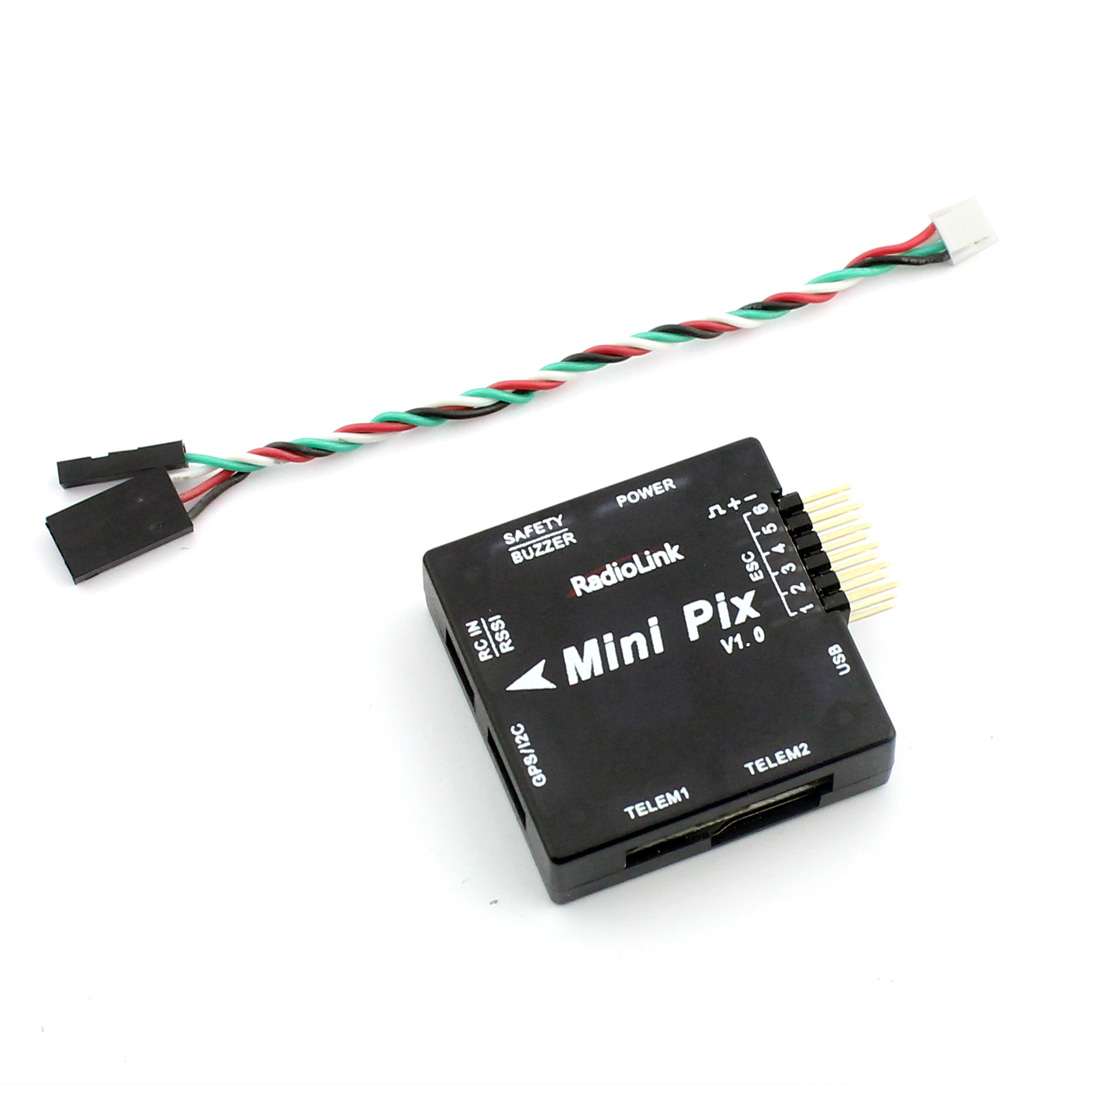 Image 4 - Radiolink Mini PIX M8N GPS Flight Control Vibration Damping by Software Atitude Hold for RC Racer Drone Multicopter Quadcopter-in Parts & Accessories from Toys & Hobbies